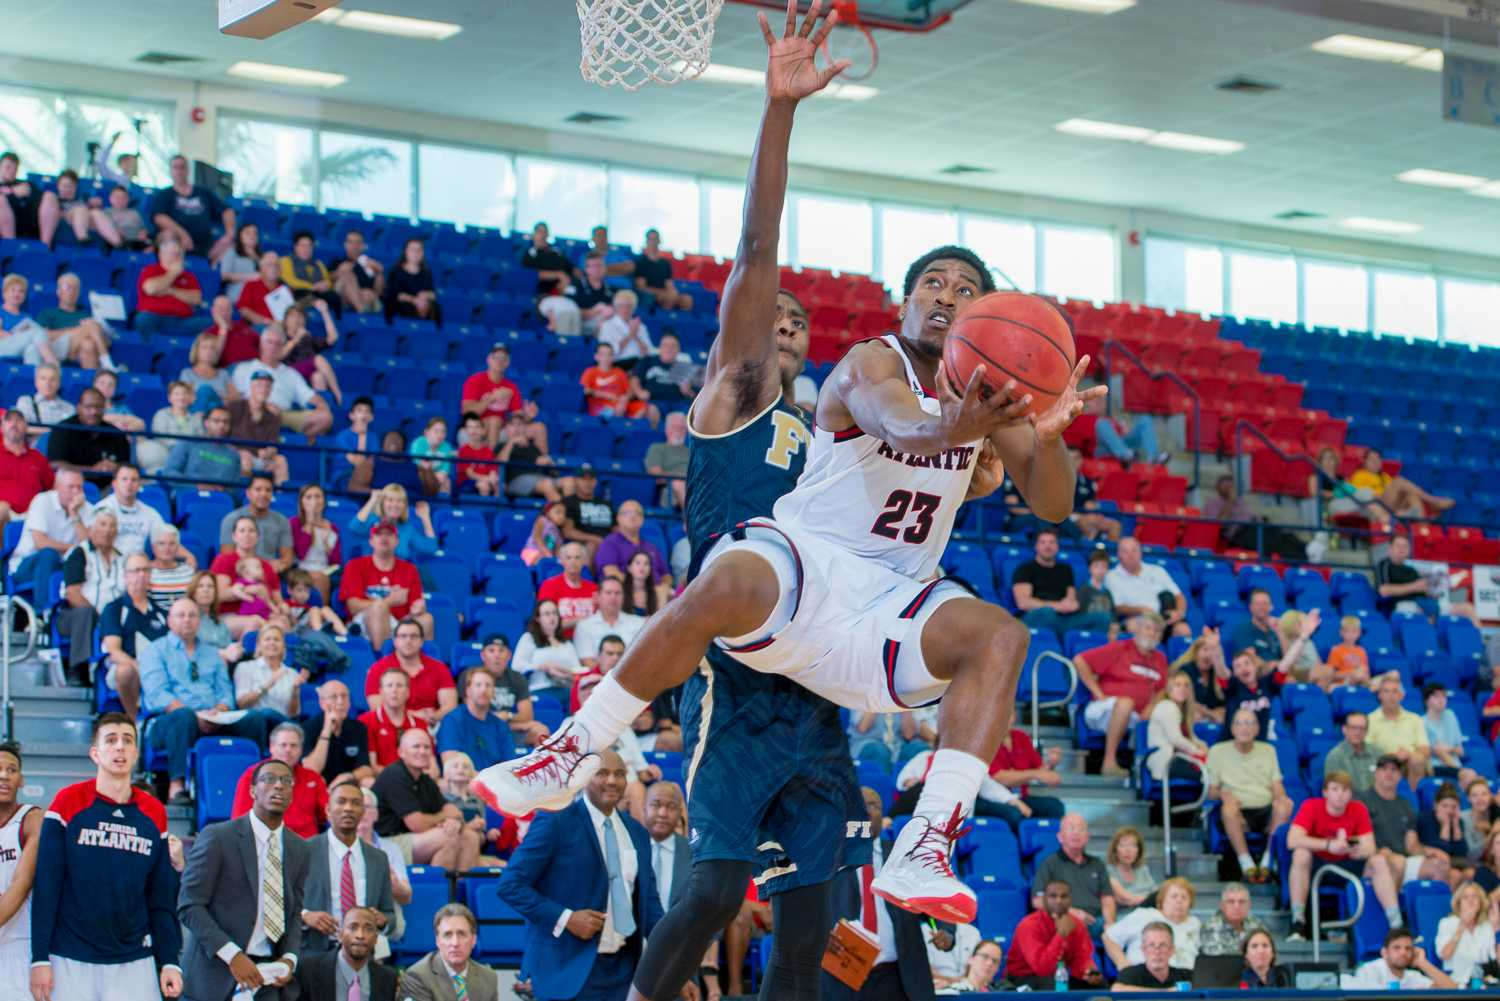 Solomon Poole shoots a successful layup in the second half against the Golden Panthers.